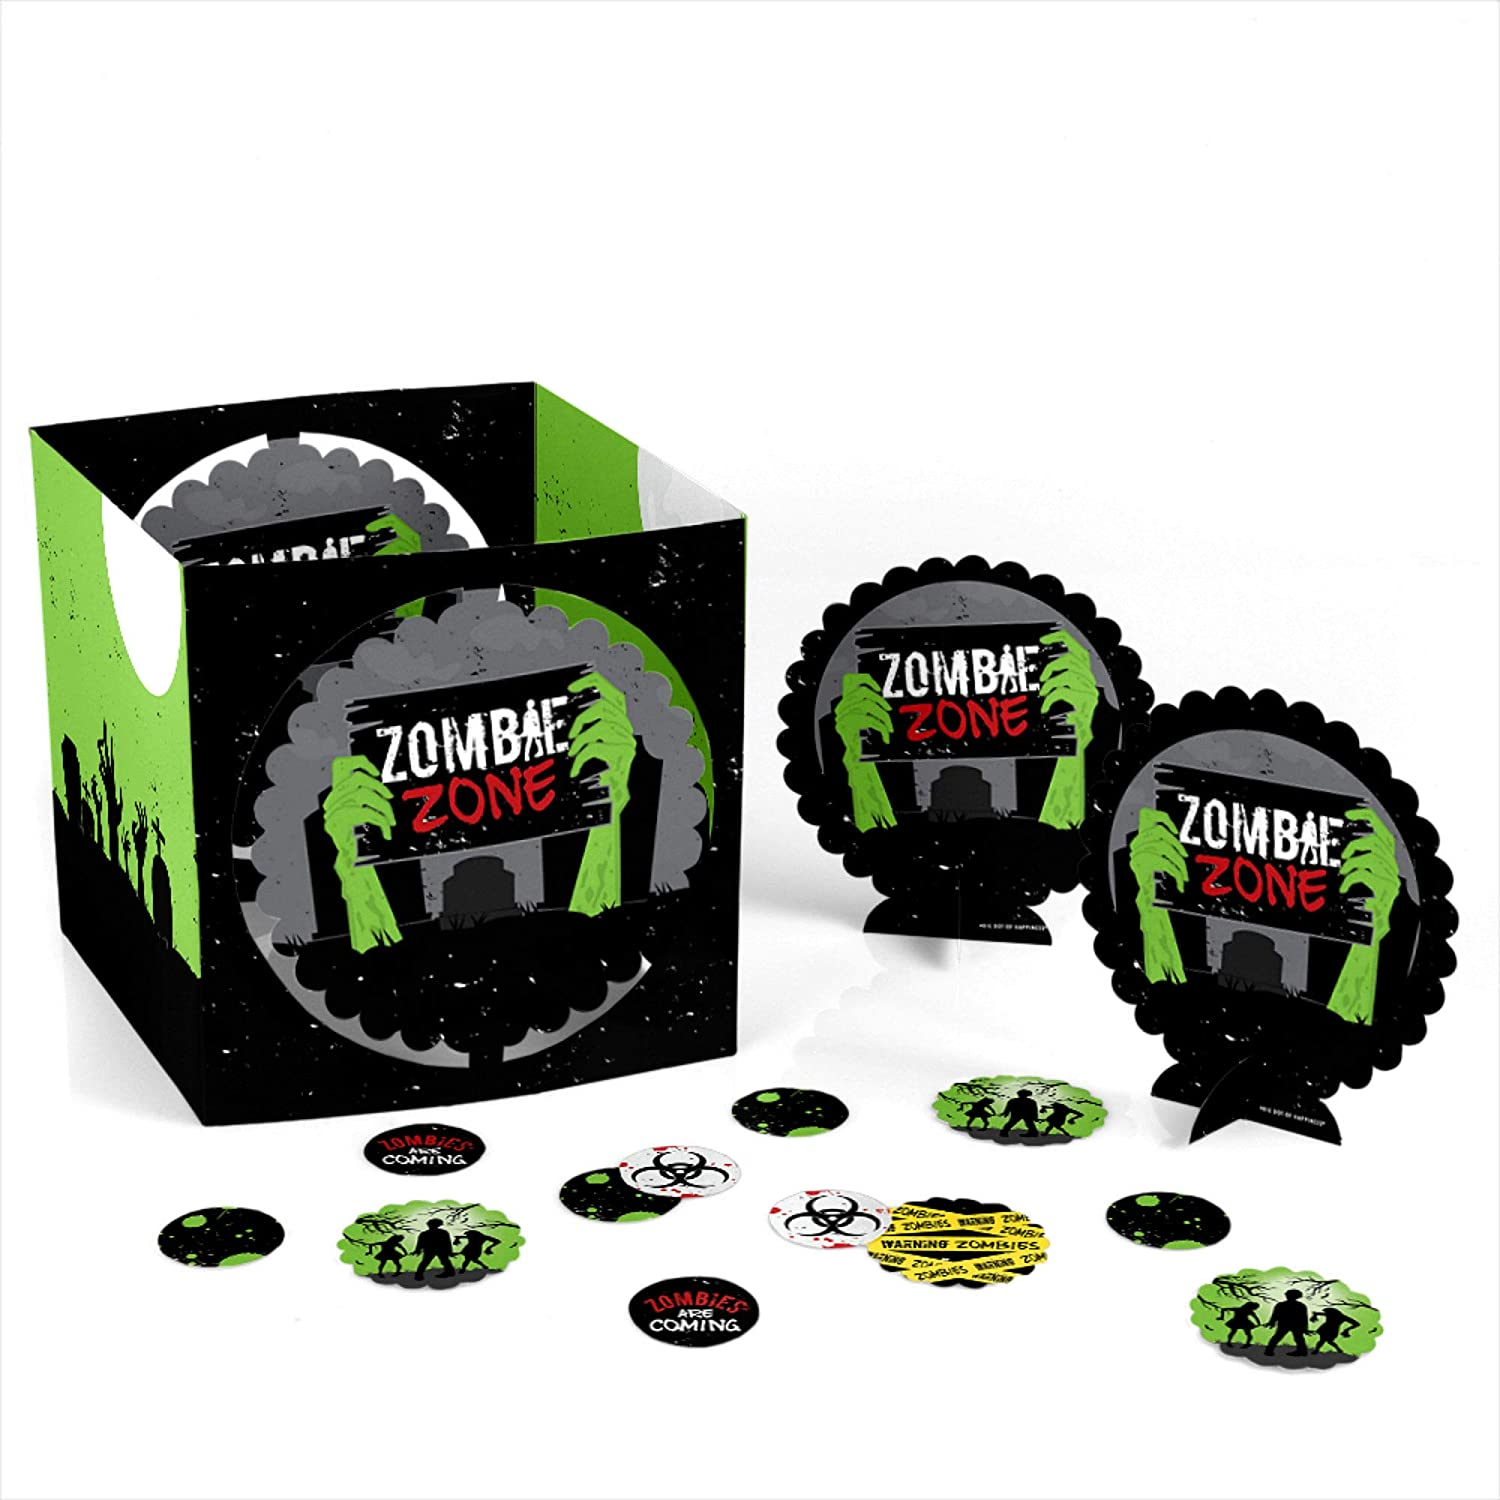 Big Dot of Happiness Zombie Zone - Halloween or Birthday Zombie Crawl Party Centerpiece & Table Decoration Kit